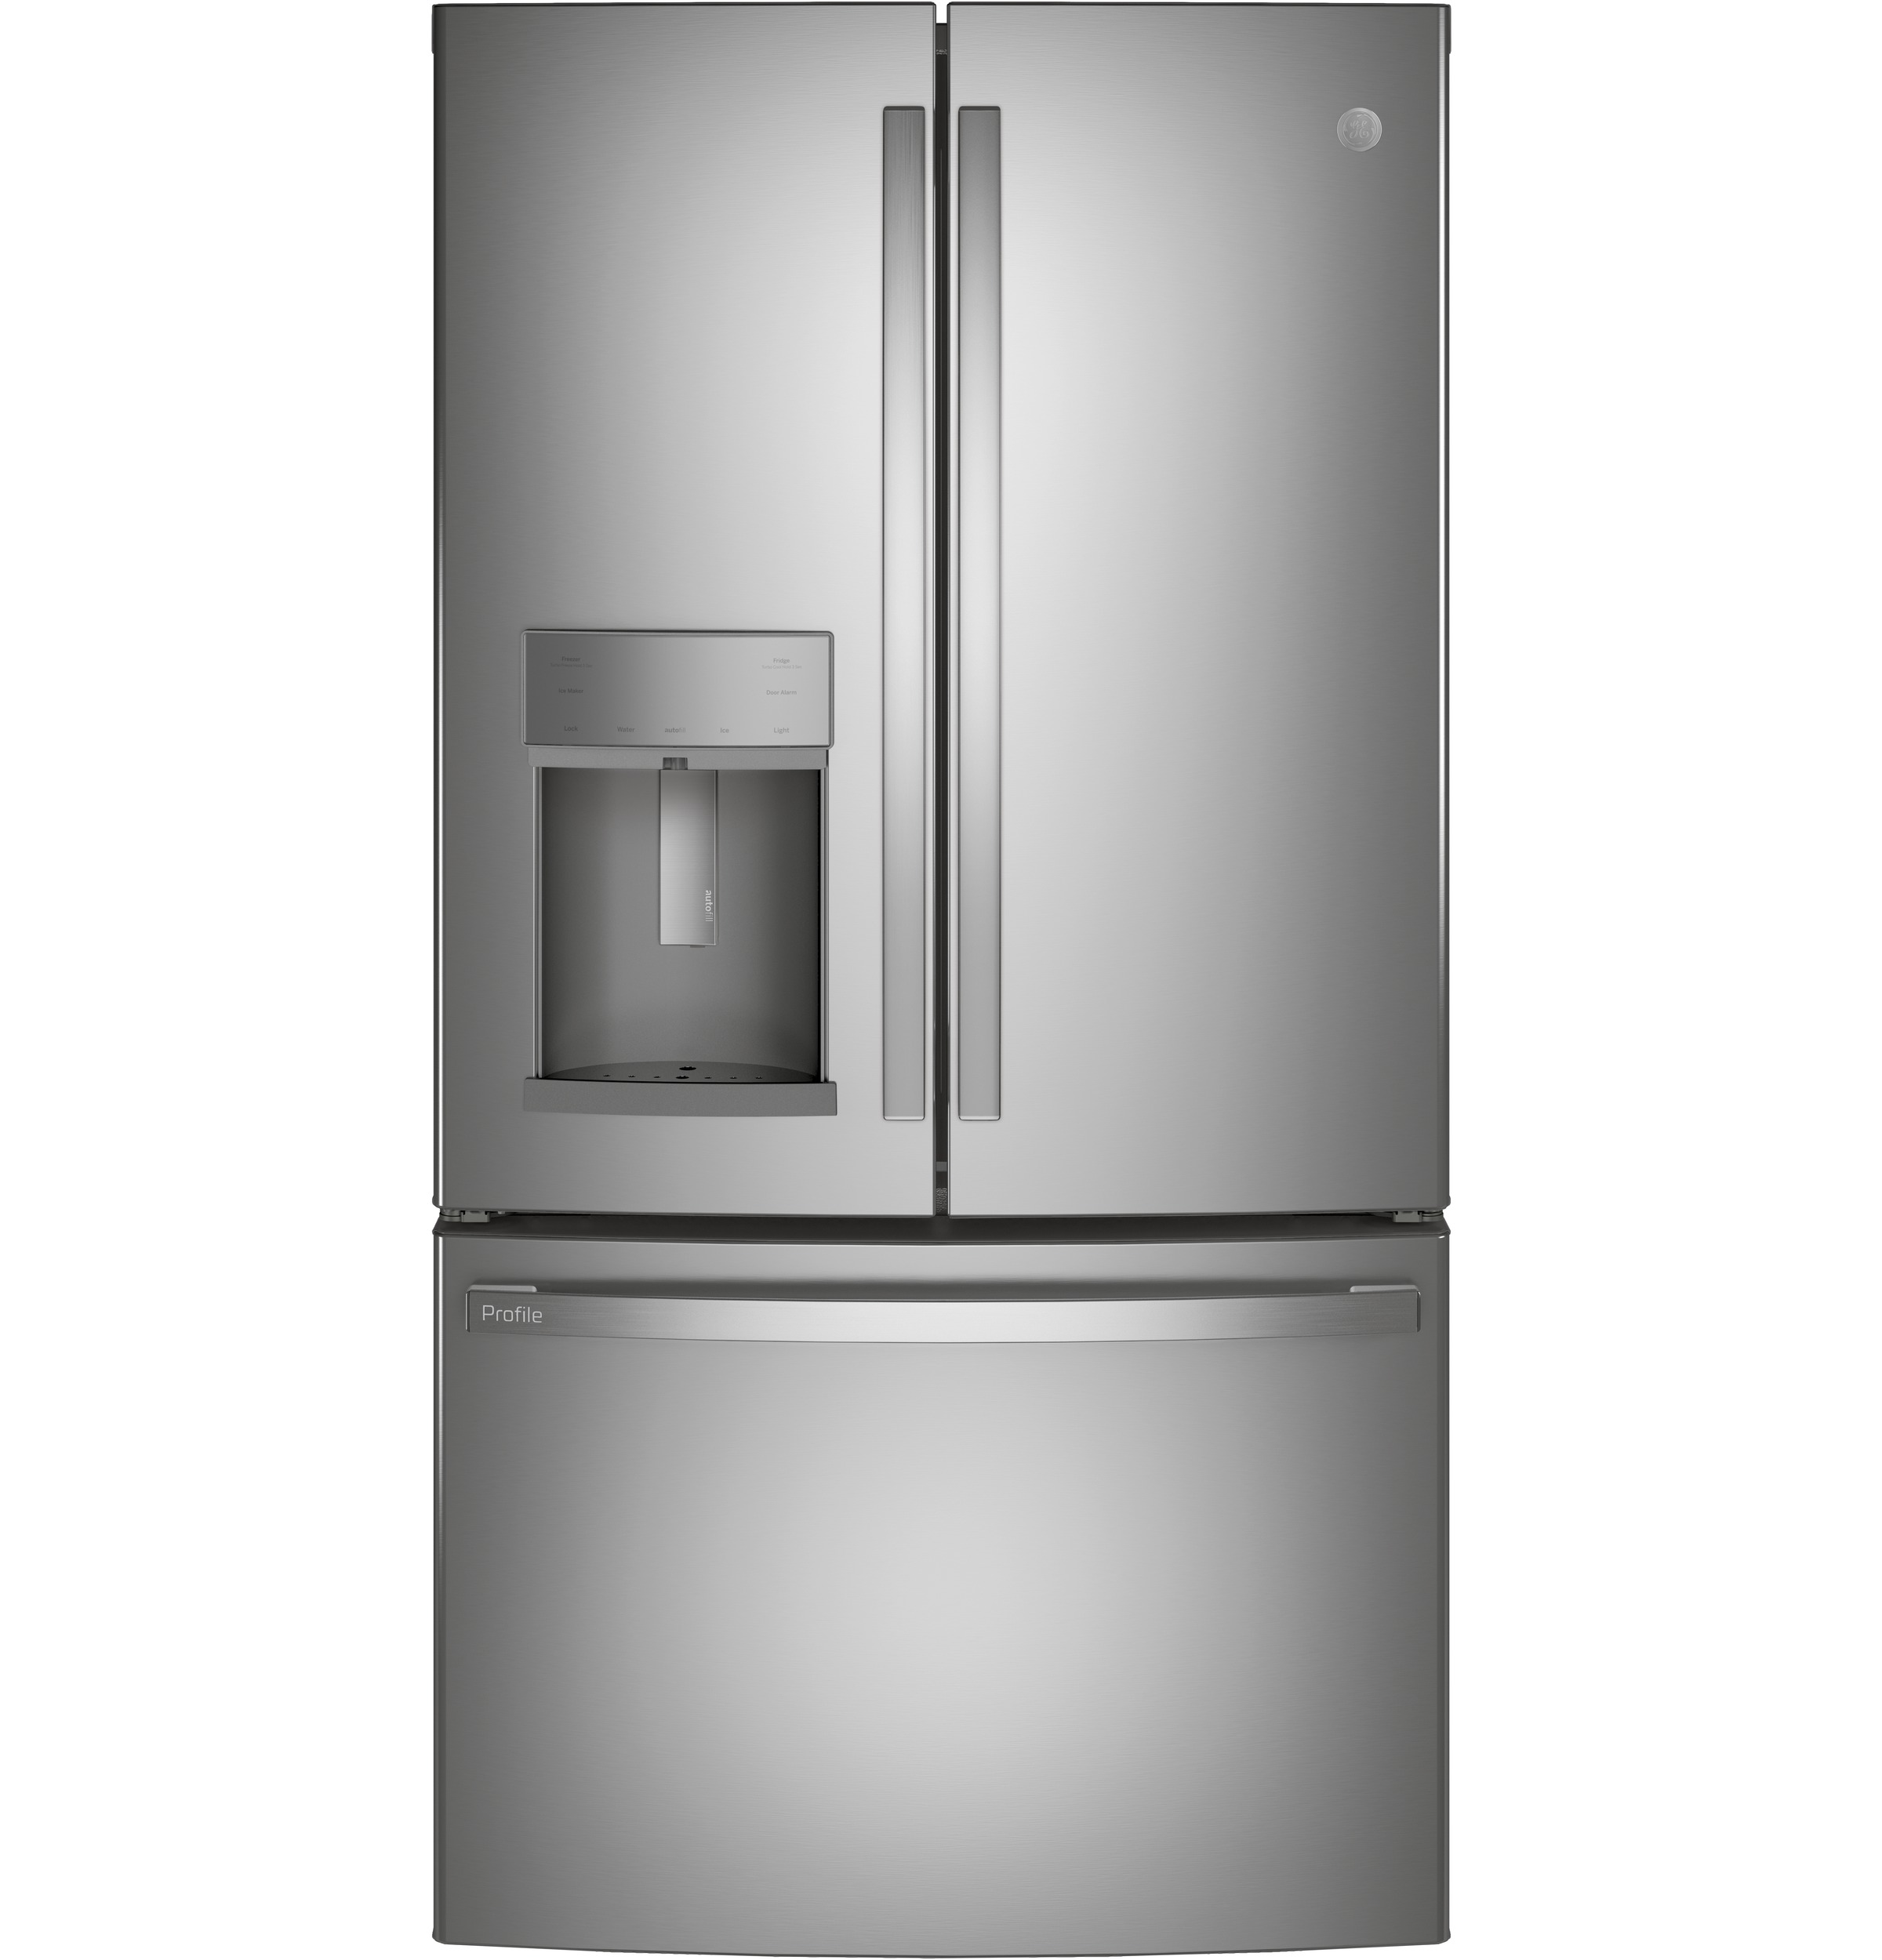 GE Profile GE Profile™ Series 27.7 Cu. Ft. French-Door Refrigerator with Door In Door and Hands-Free AutoFill